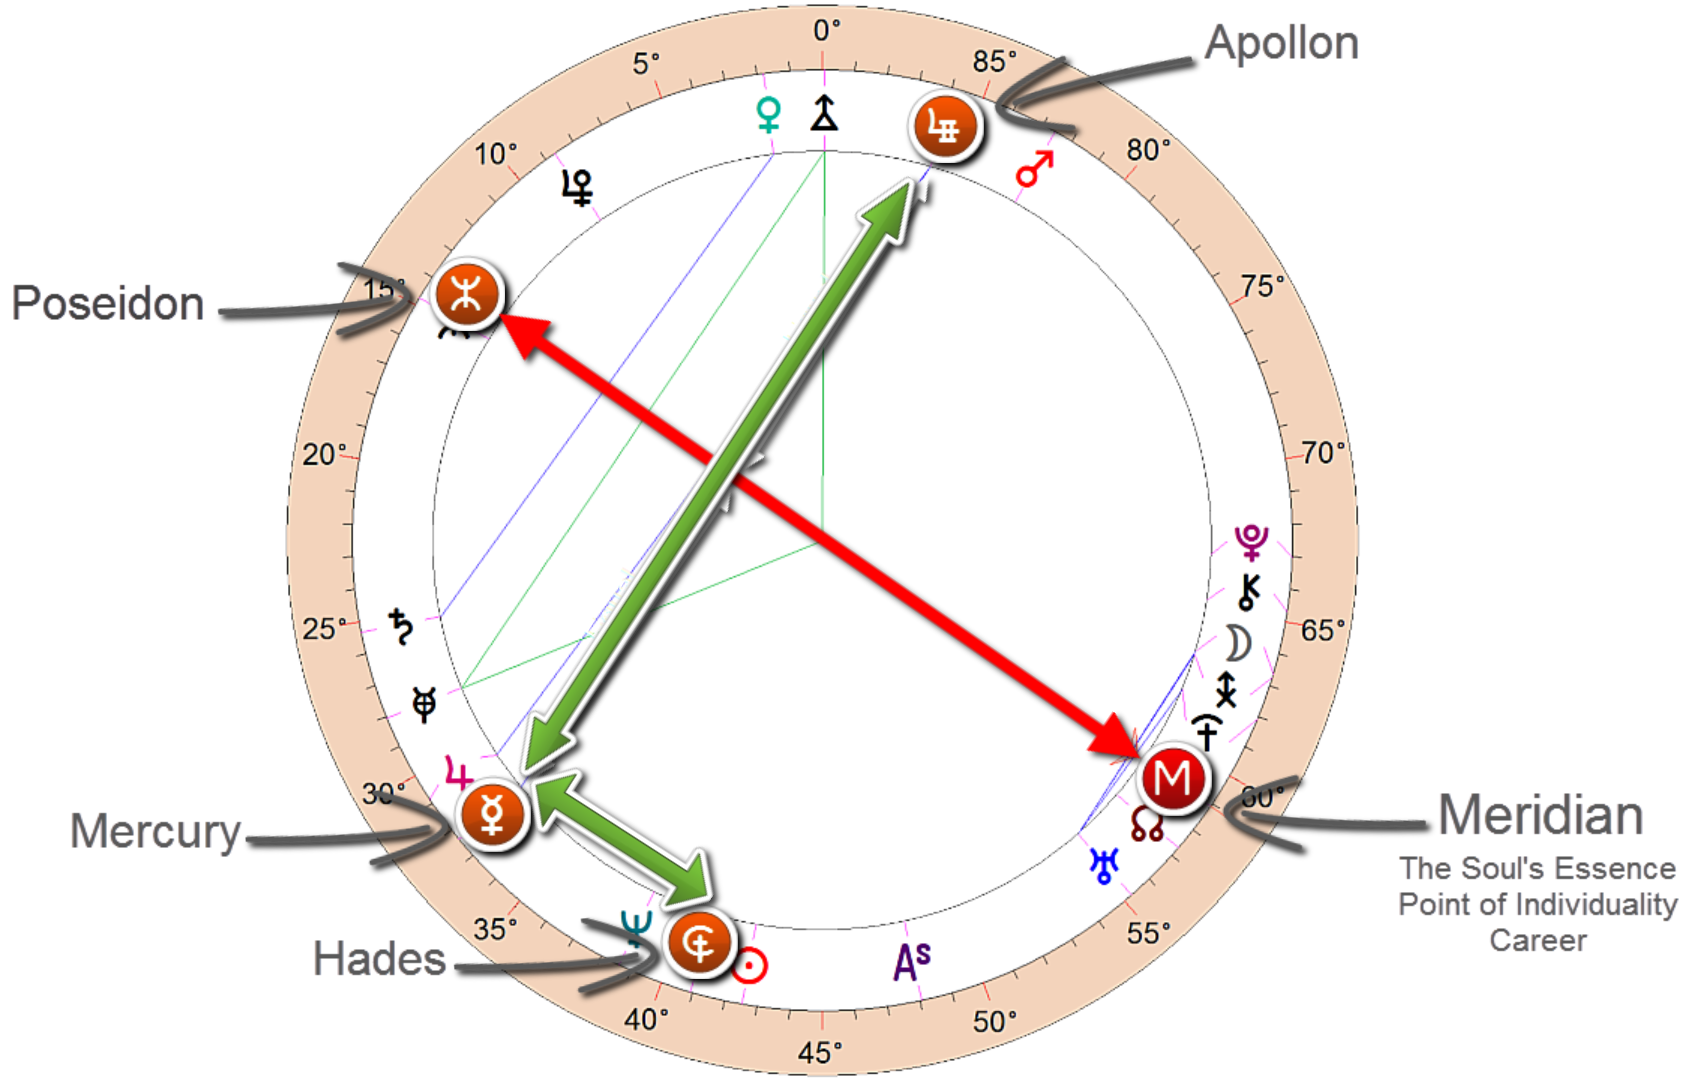 hades is the three point picture with his mercury/apollon midpoint structure.